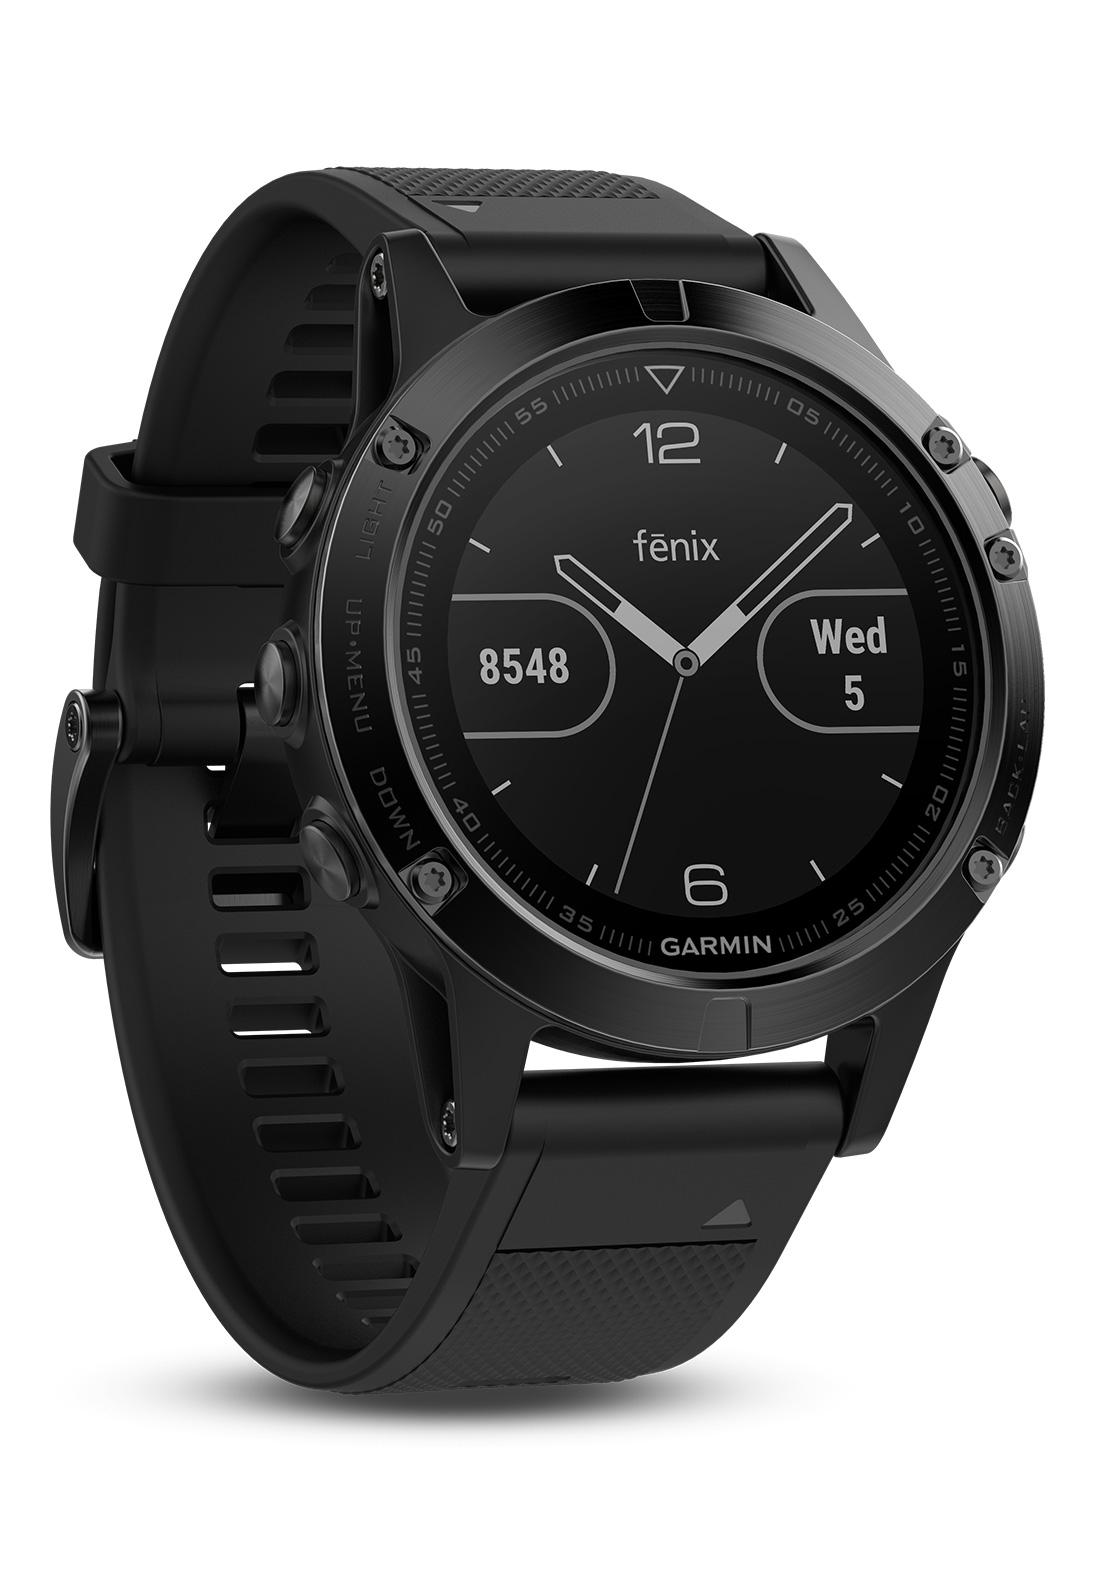 garmin fenix 5 saphir schwarz gps multisport smartwatch. Black Bedroom Furniture Sets. Home Design Ideas